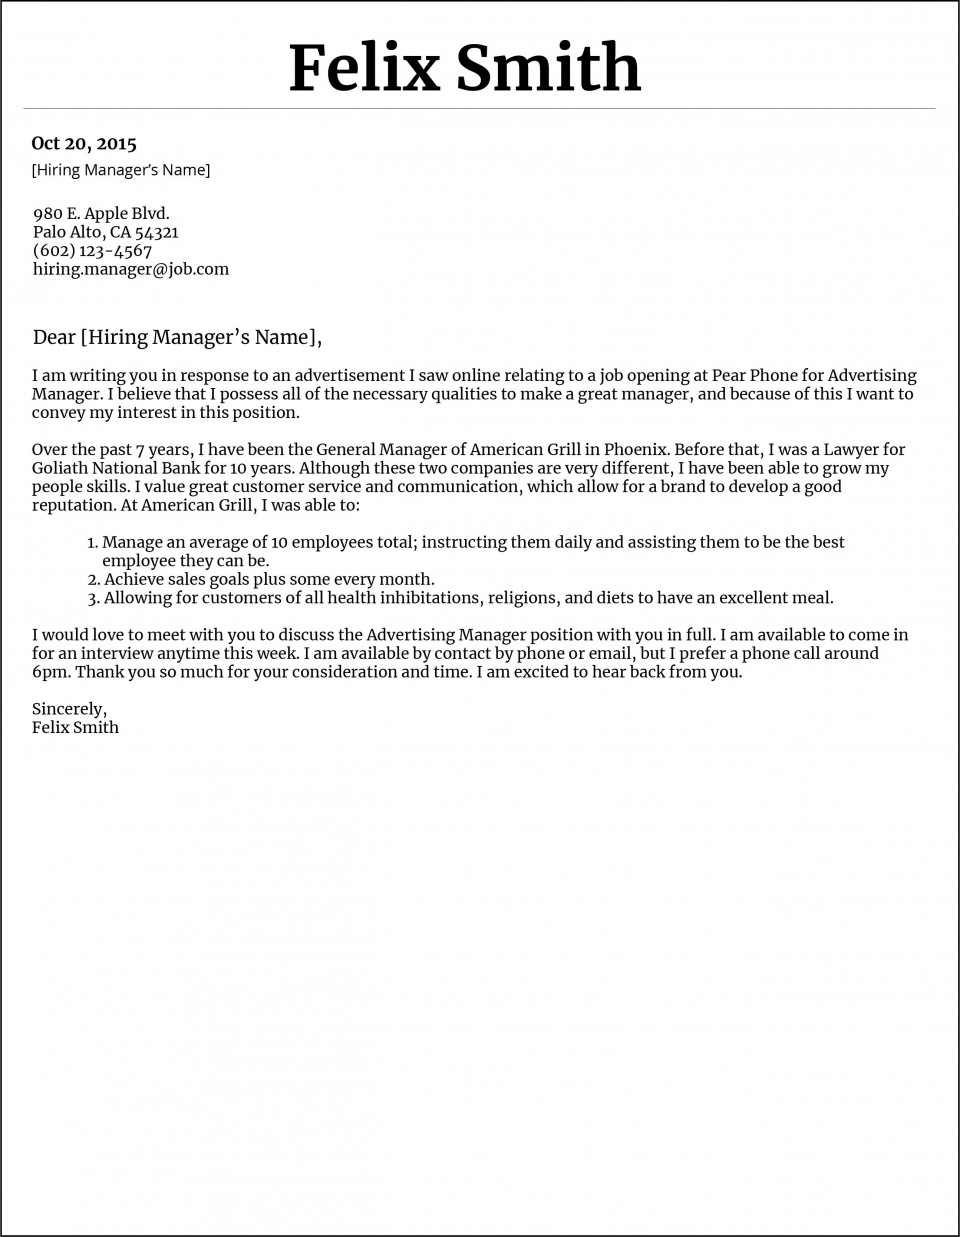 010 Marvelou General Manager Cover Letter Template Highest Clarity  Hotel960